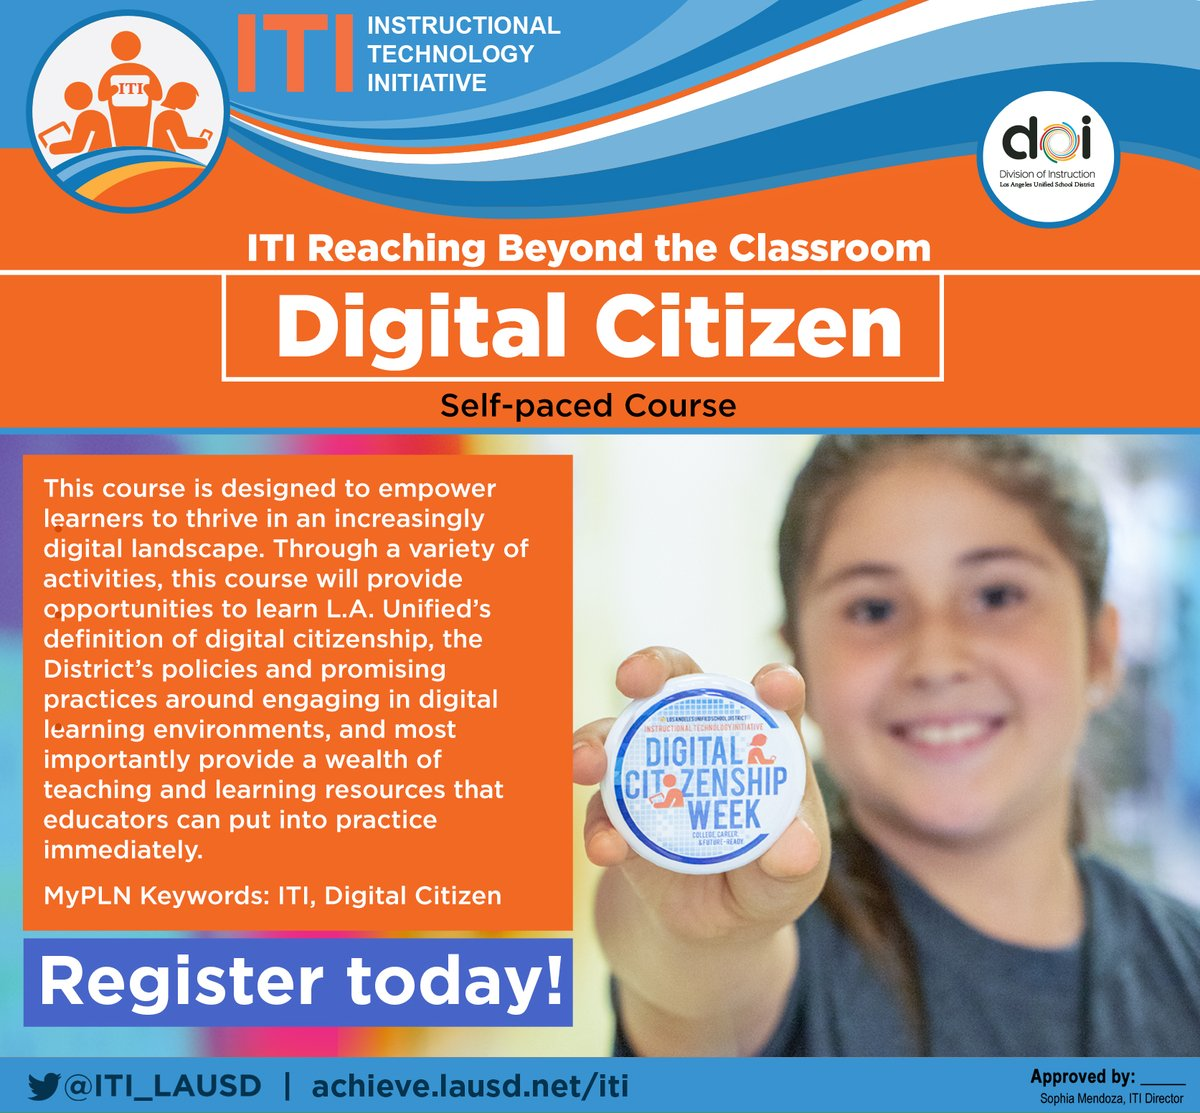 ATTN @LASchools: Interested in learning how to engage in #DigCit w/ your students?  Join this self-paced course to explore #DigCitCommit practices! Completing this course supports  @CommonSenseEd  Certification! REGISTER VIA MyPLN.  cc @LAUSDLDSouth @LDNESchools @LAUSDNorthwest https://t.co/h1LqiUeWF6